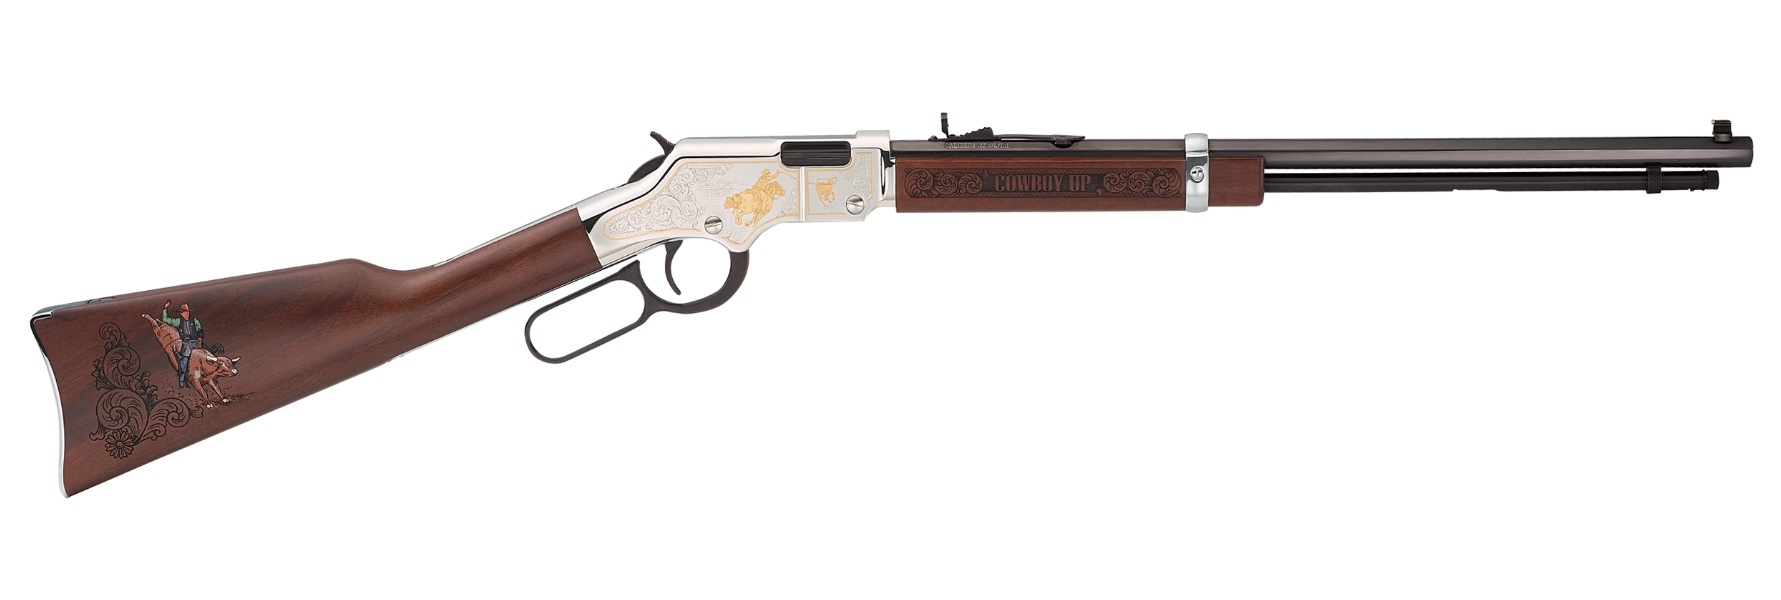 Henry Repeating Arms GOLDENBOY AMERICAN RODEO EDIT. 22 LR